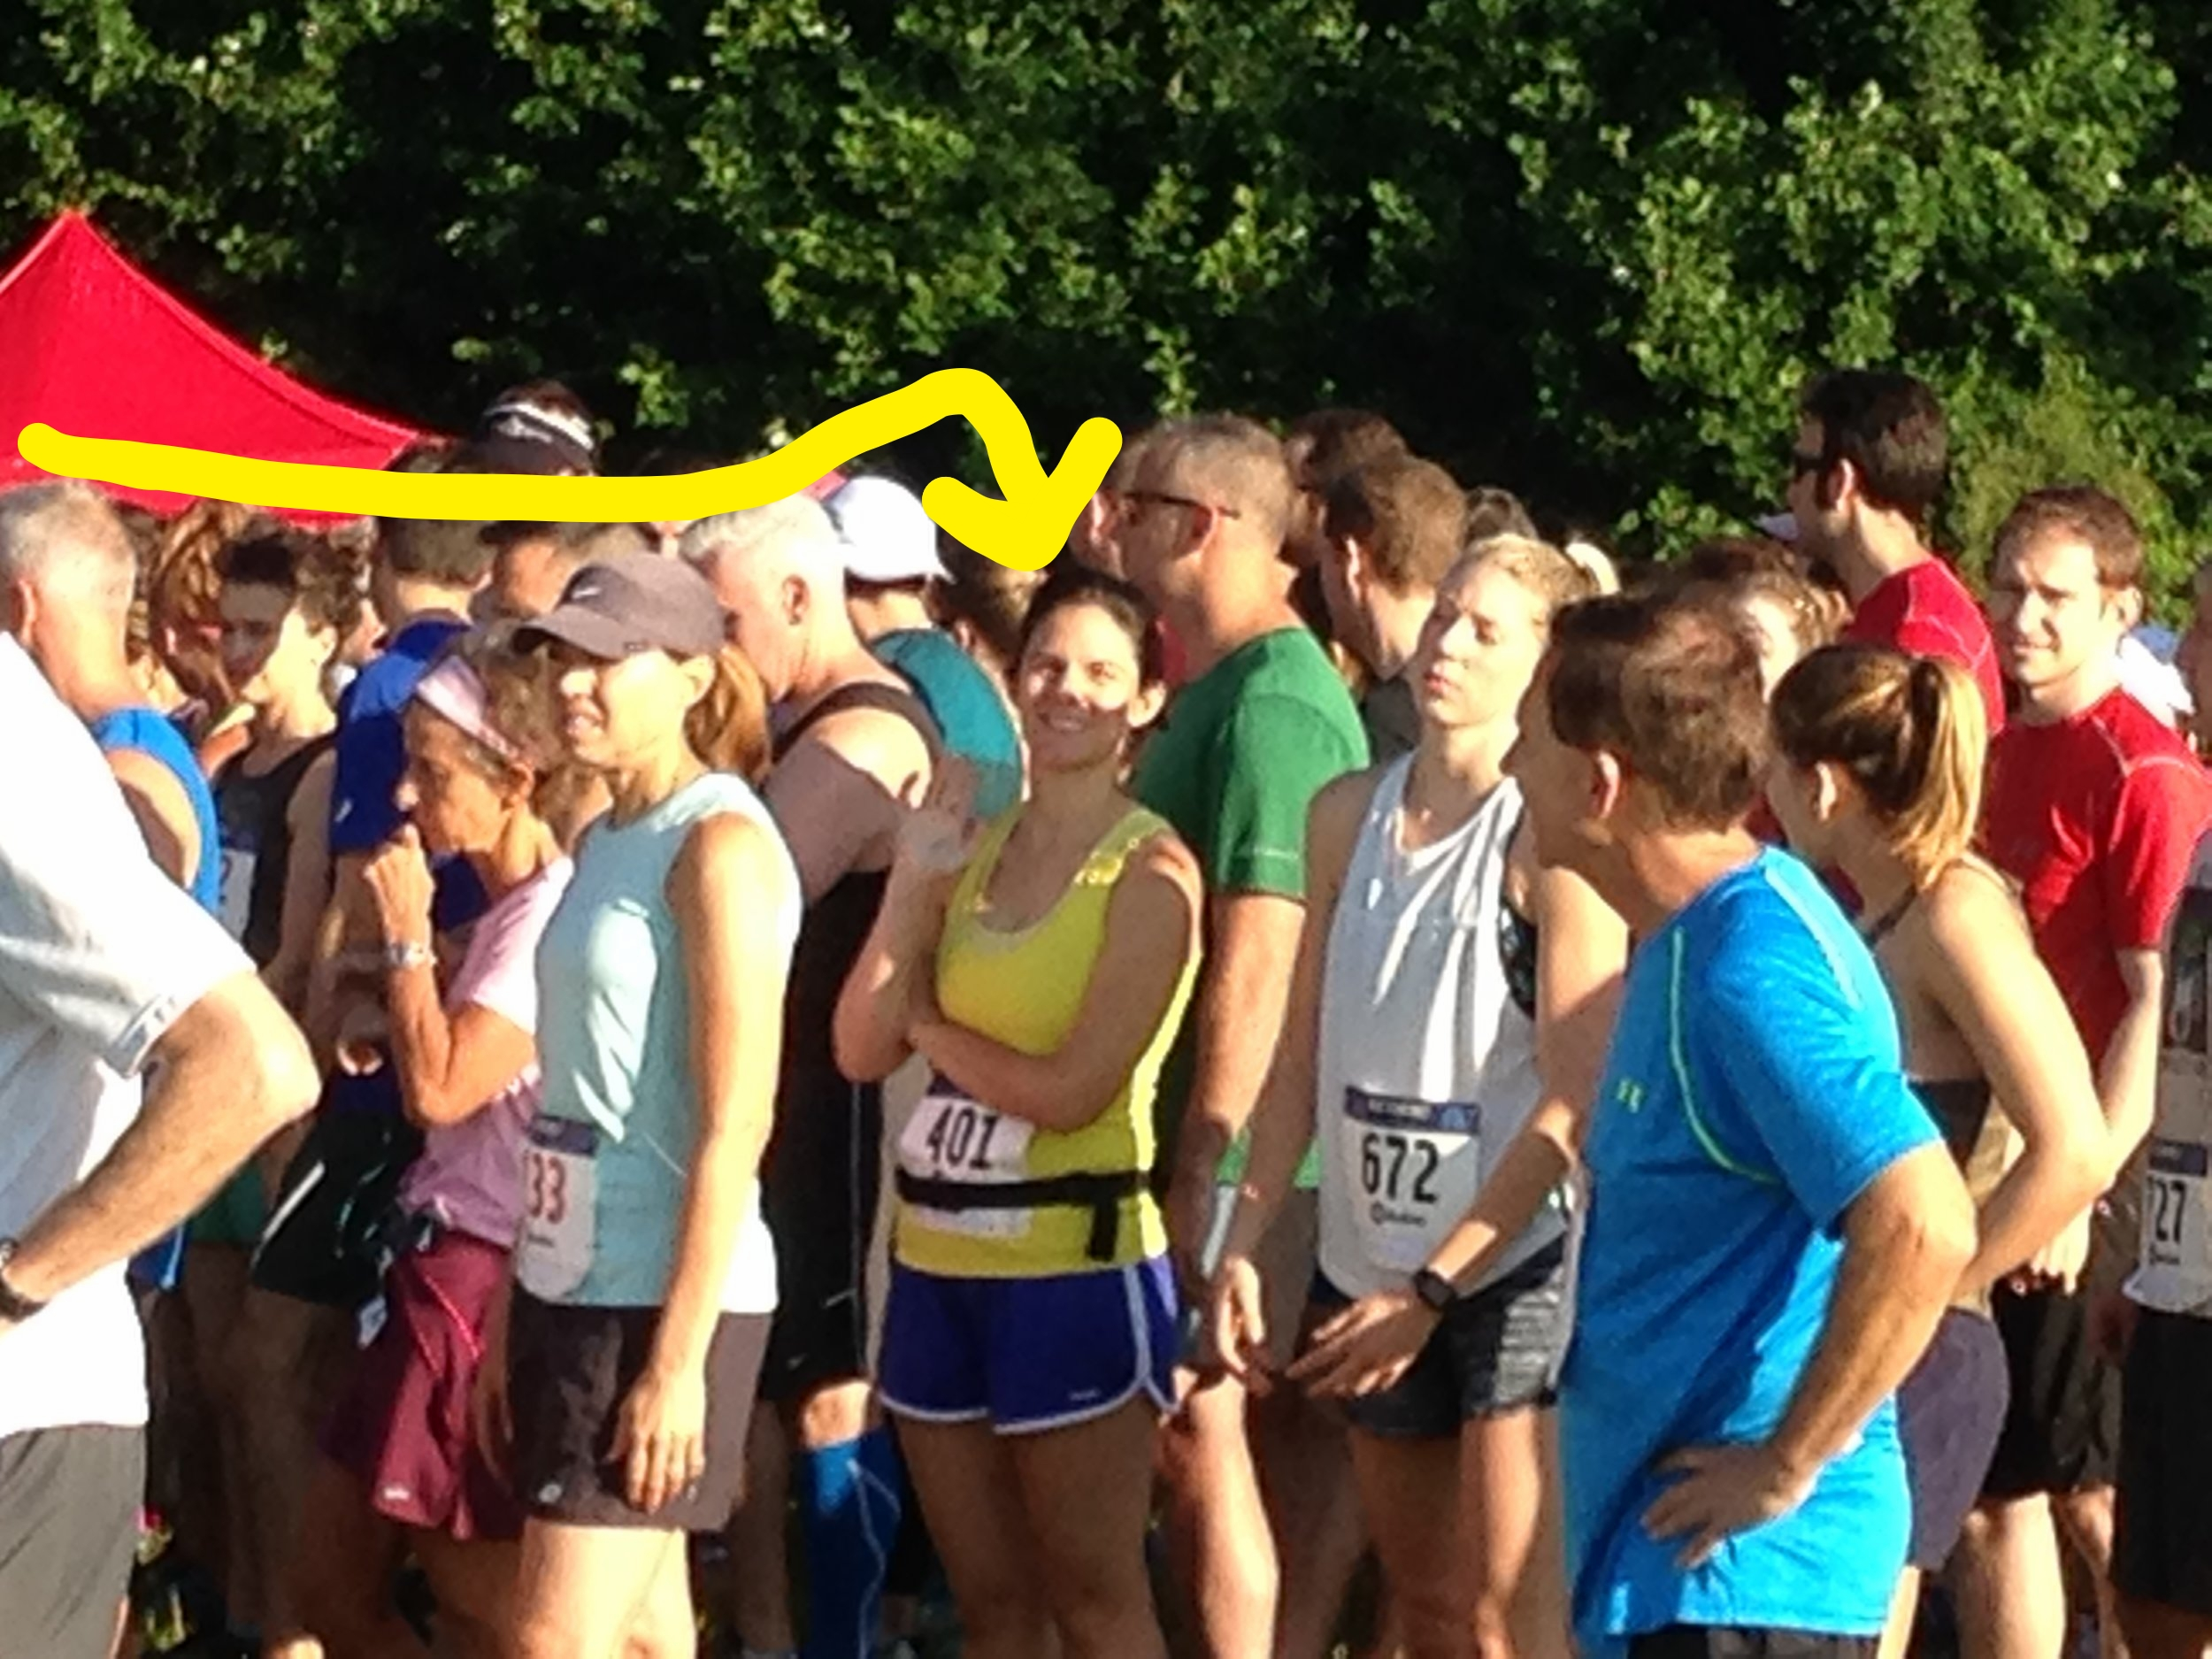 Me at my first (only?) 10K!